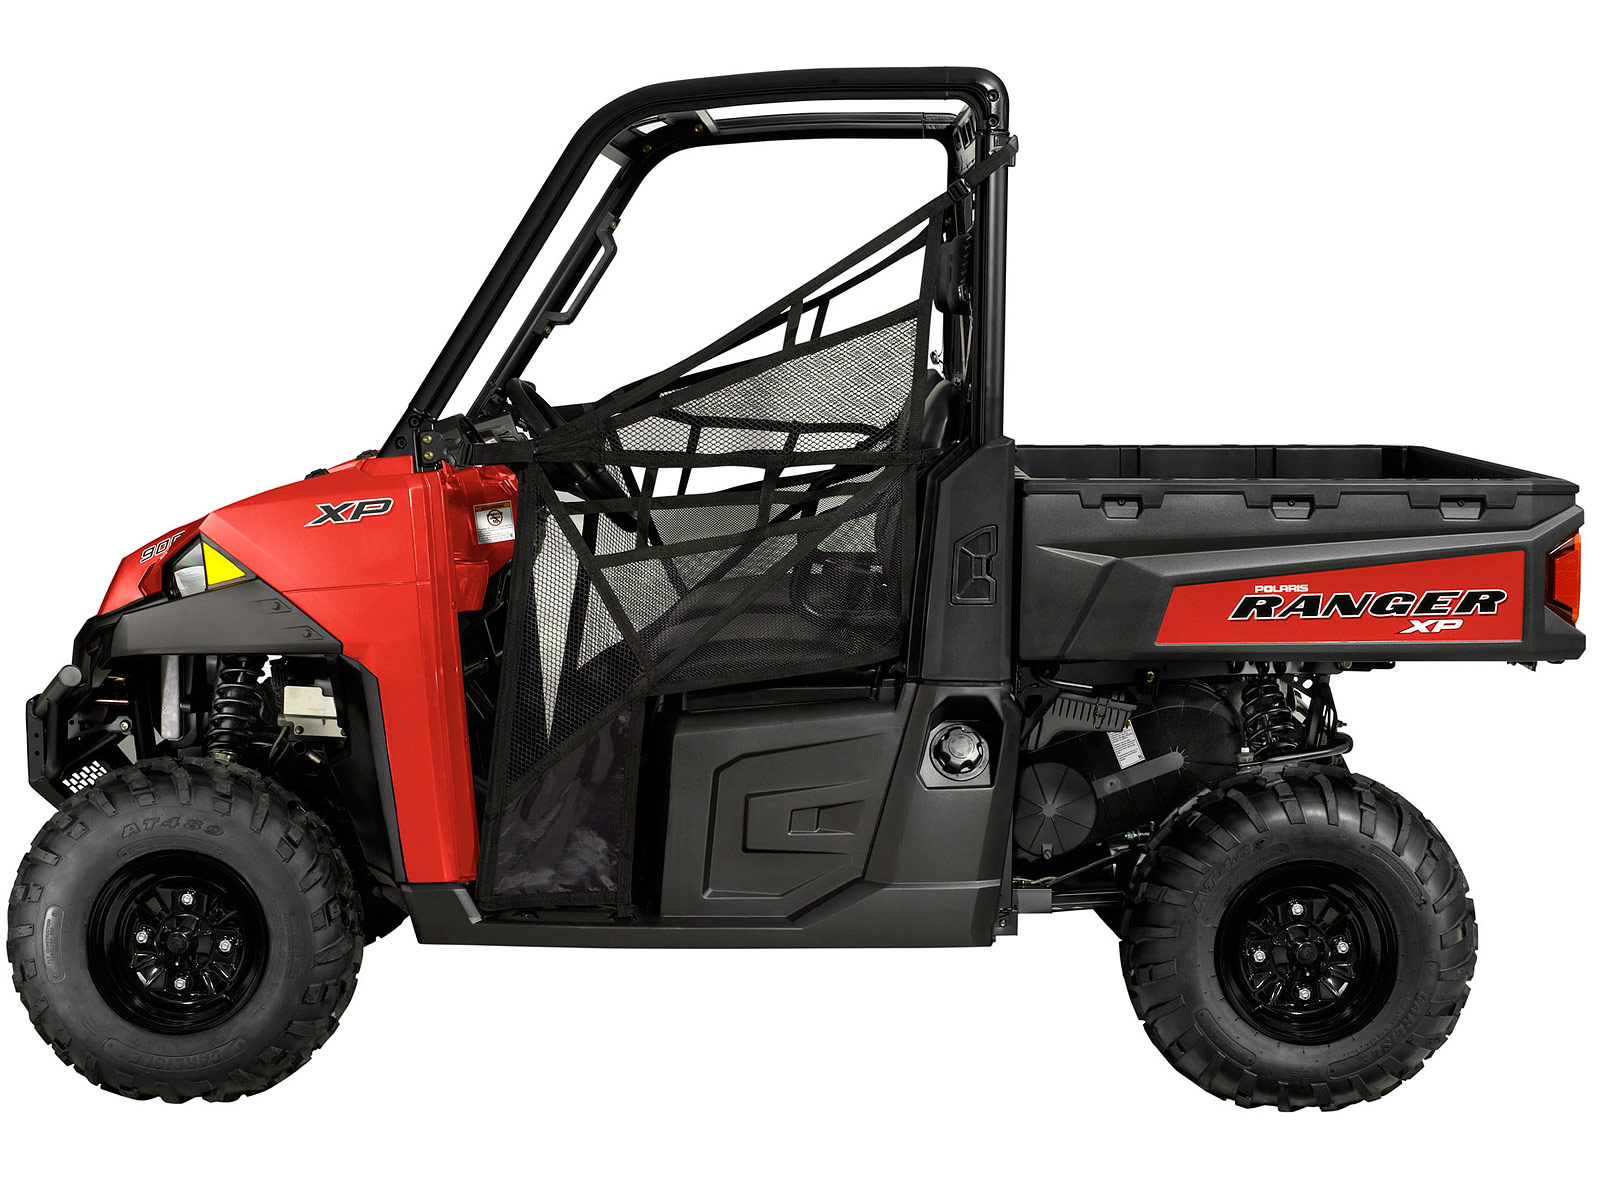 polaris atv pictures 2013 ranger xp900 pictures specifications. Black Bedroom Furniture Sets. Home Design Ideas